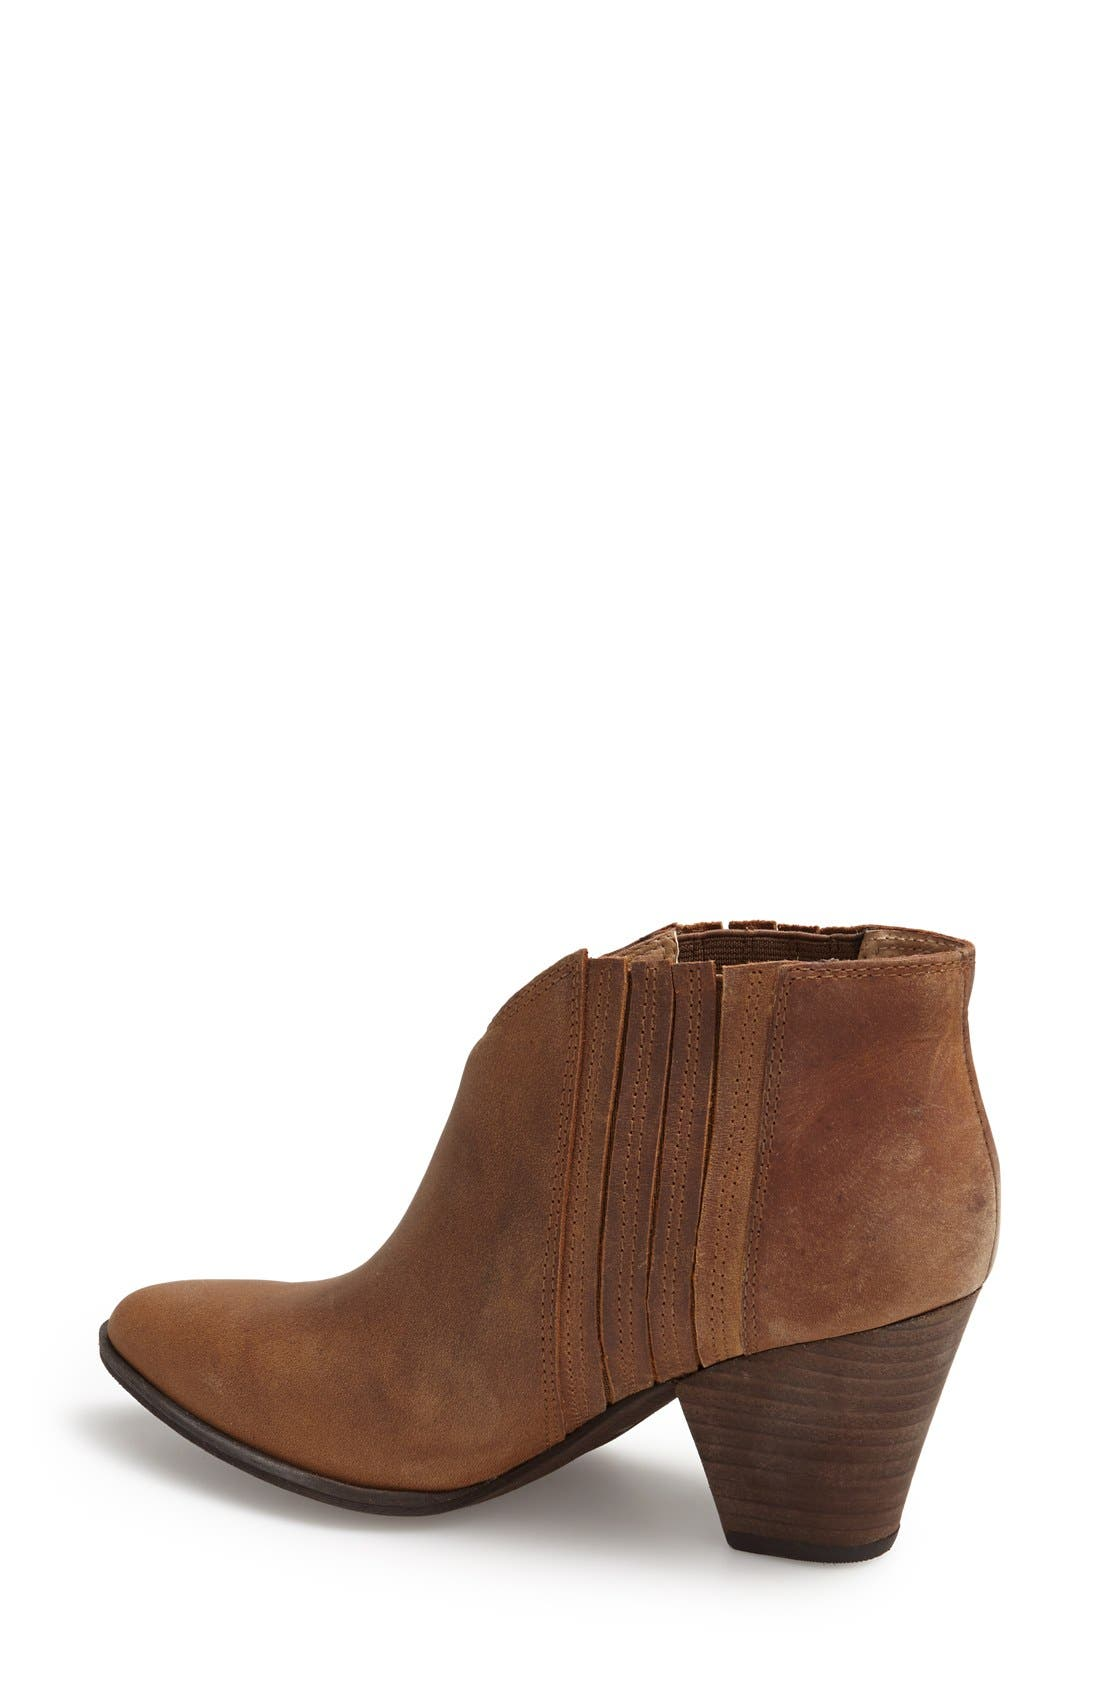 'Addie' Pointy Toe Ankle Bootie,                             Alternate thumbnail 16, color,